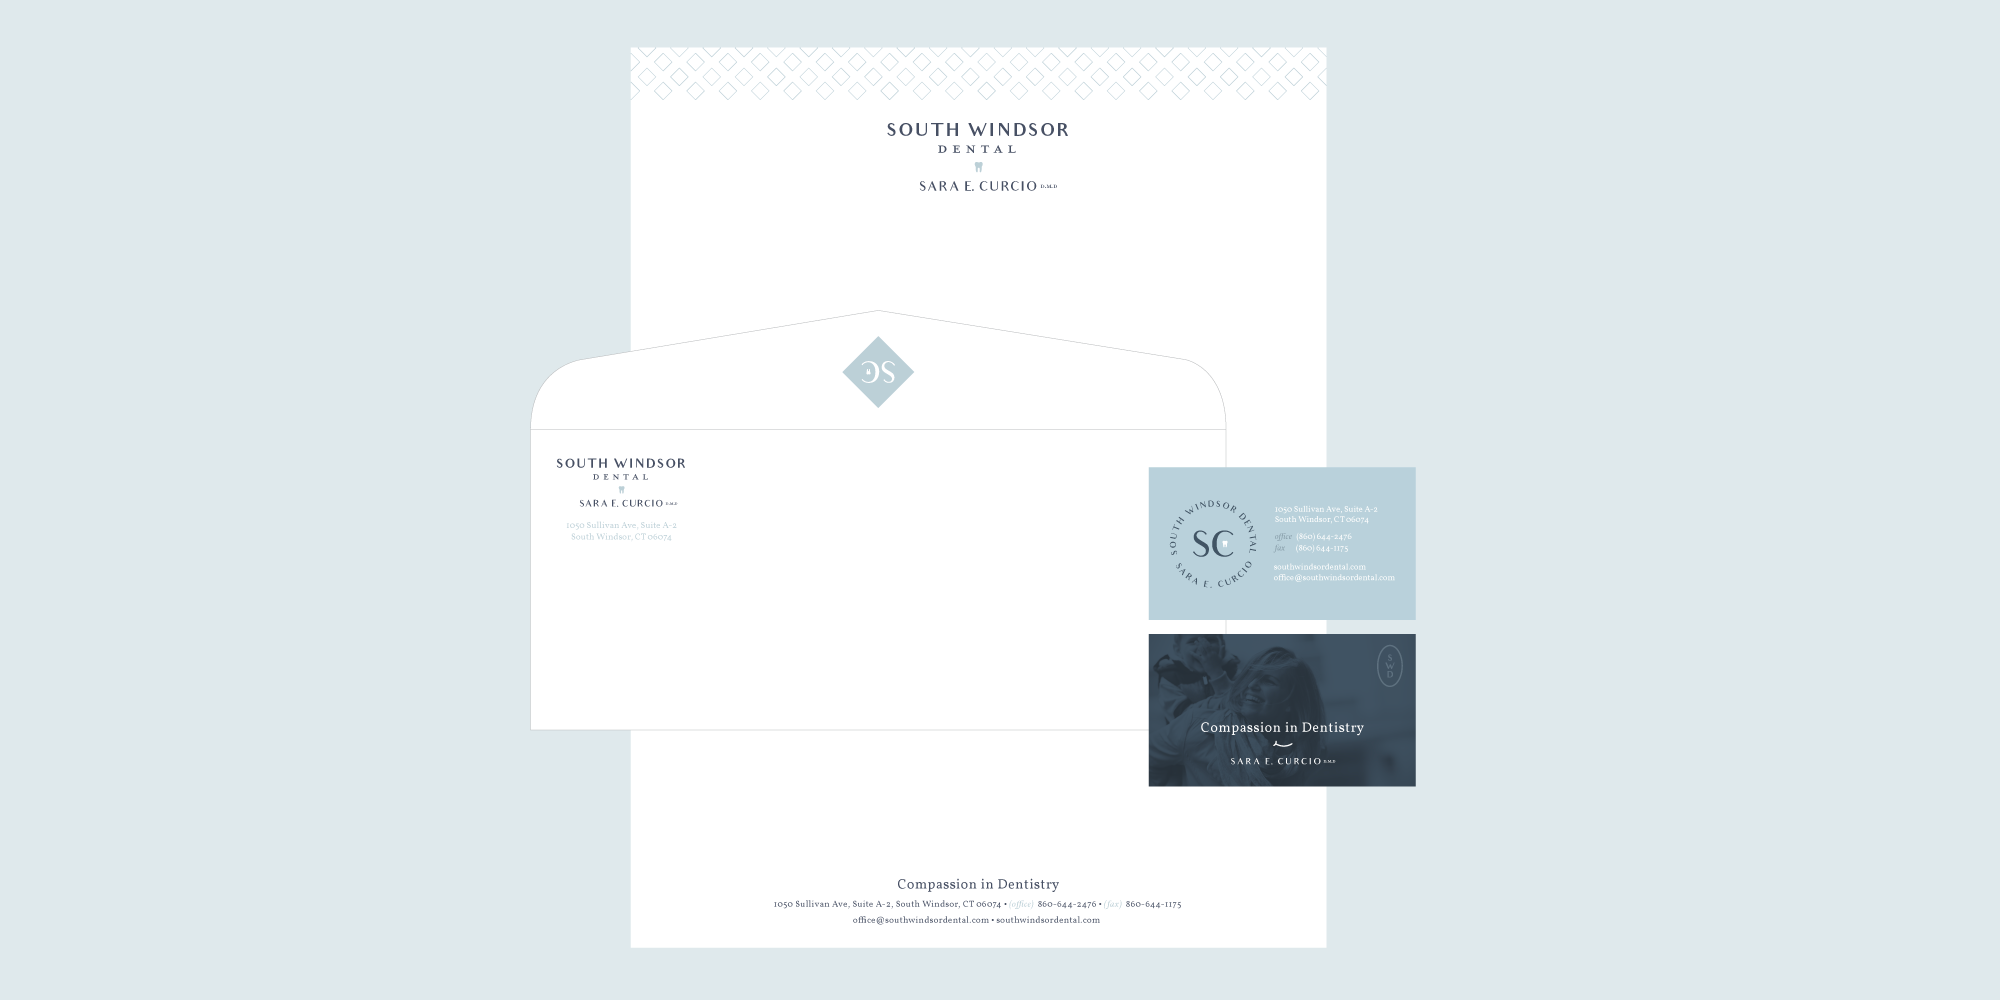 South Windsor Dental brand collateral   Pace Creative Design Studio